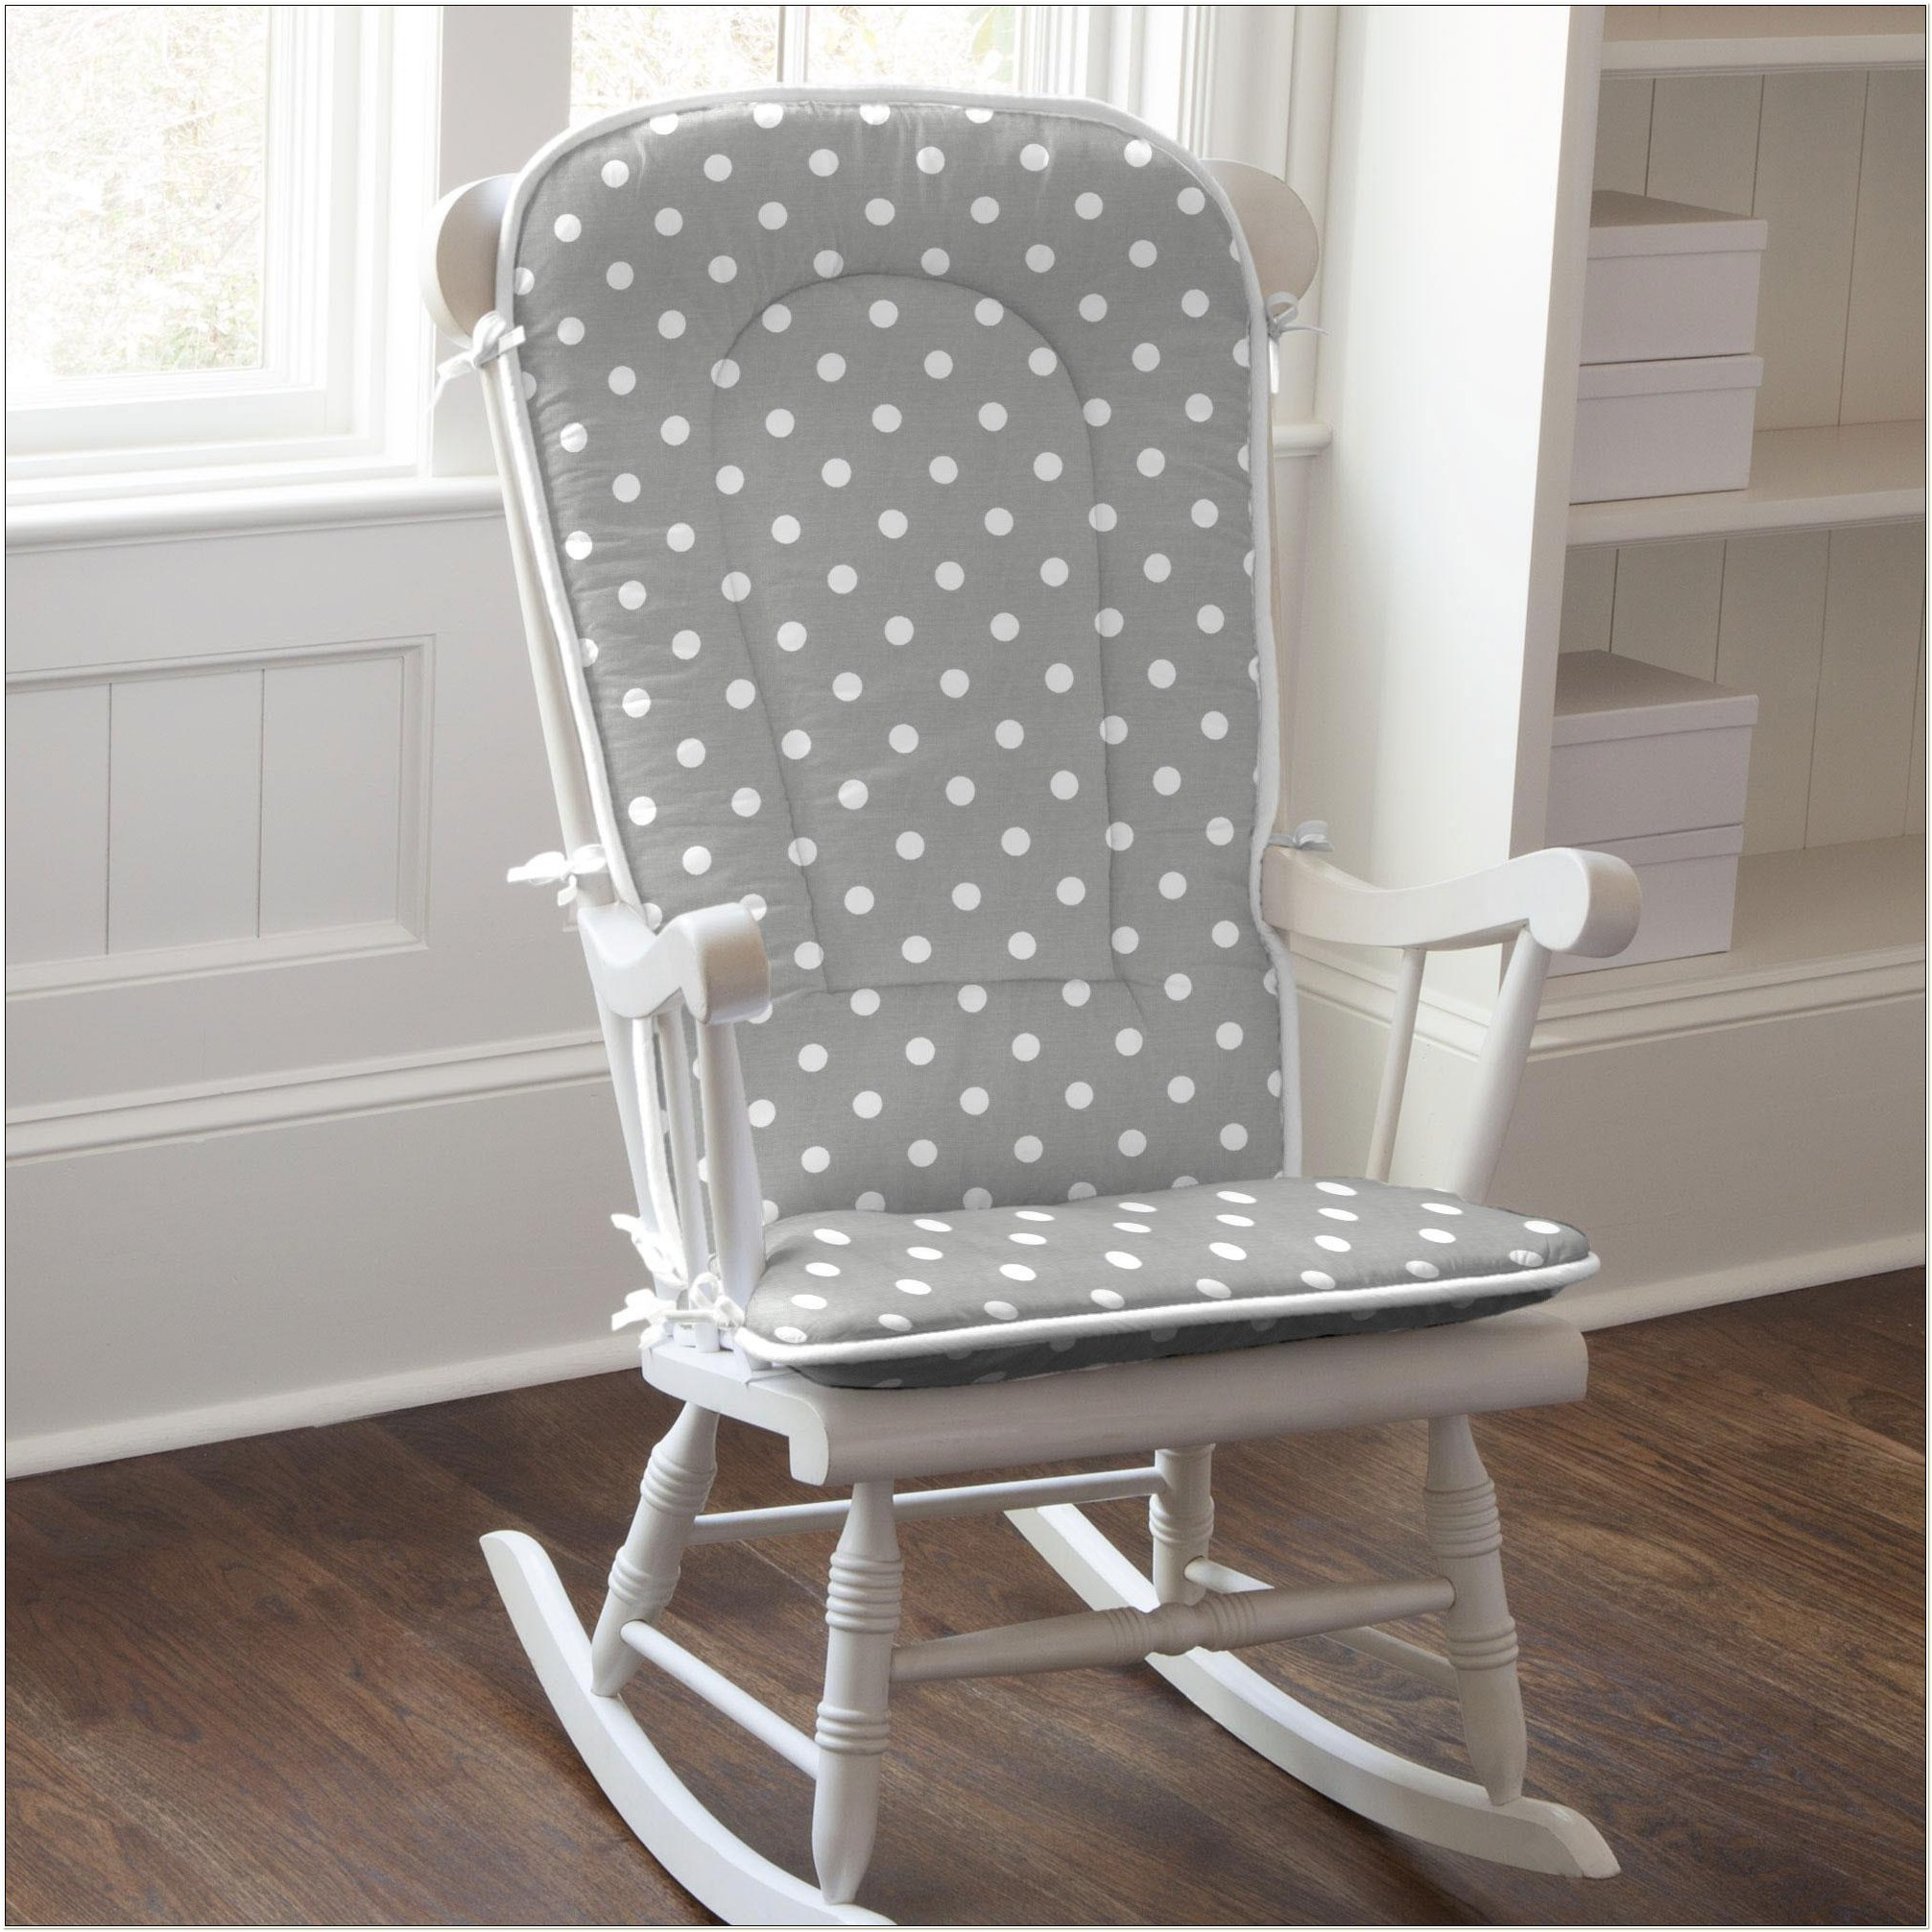 Nursery Rocking Chair Pads